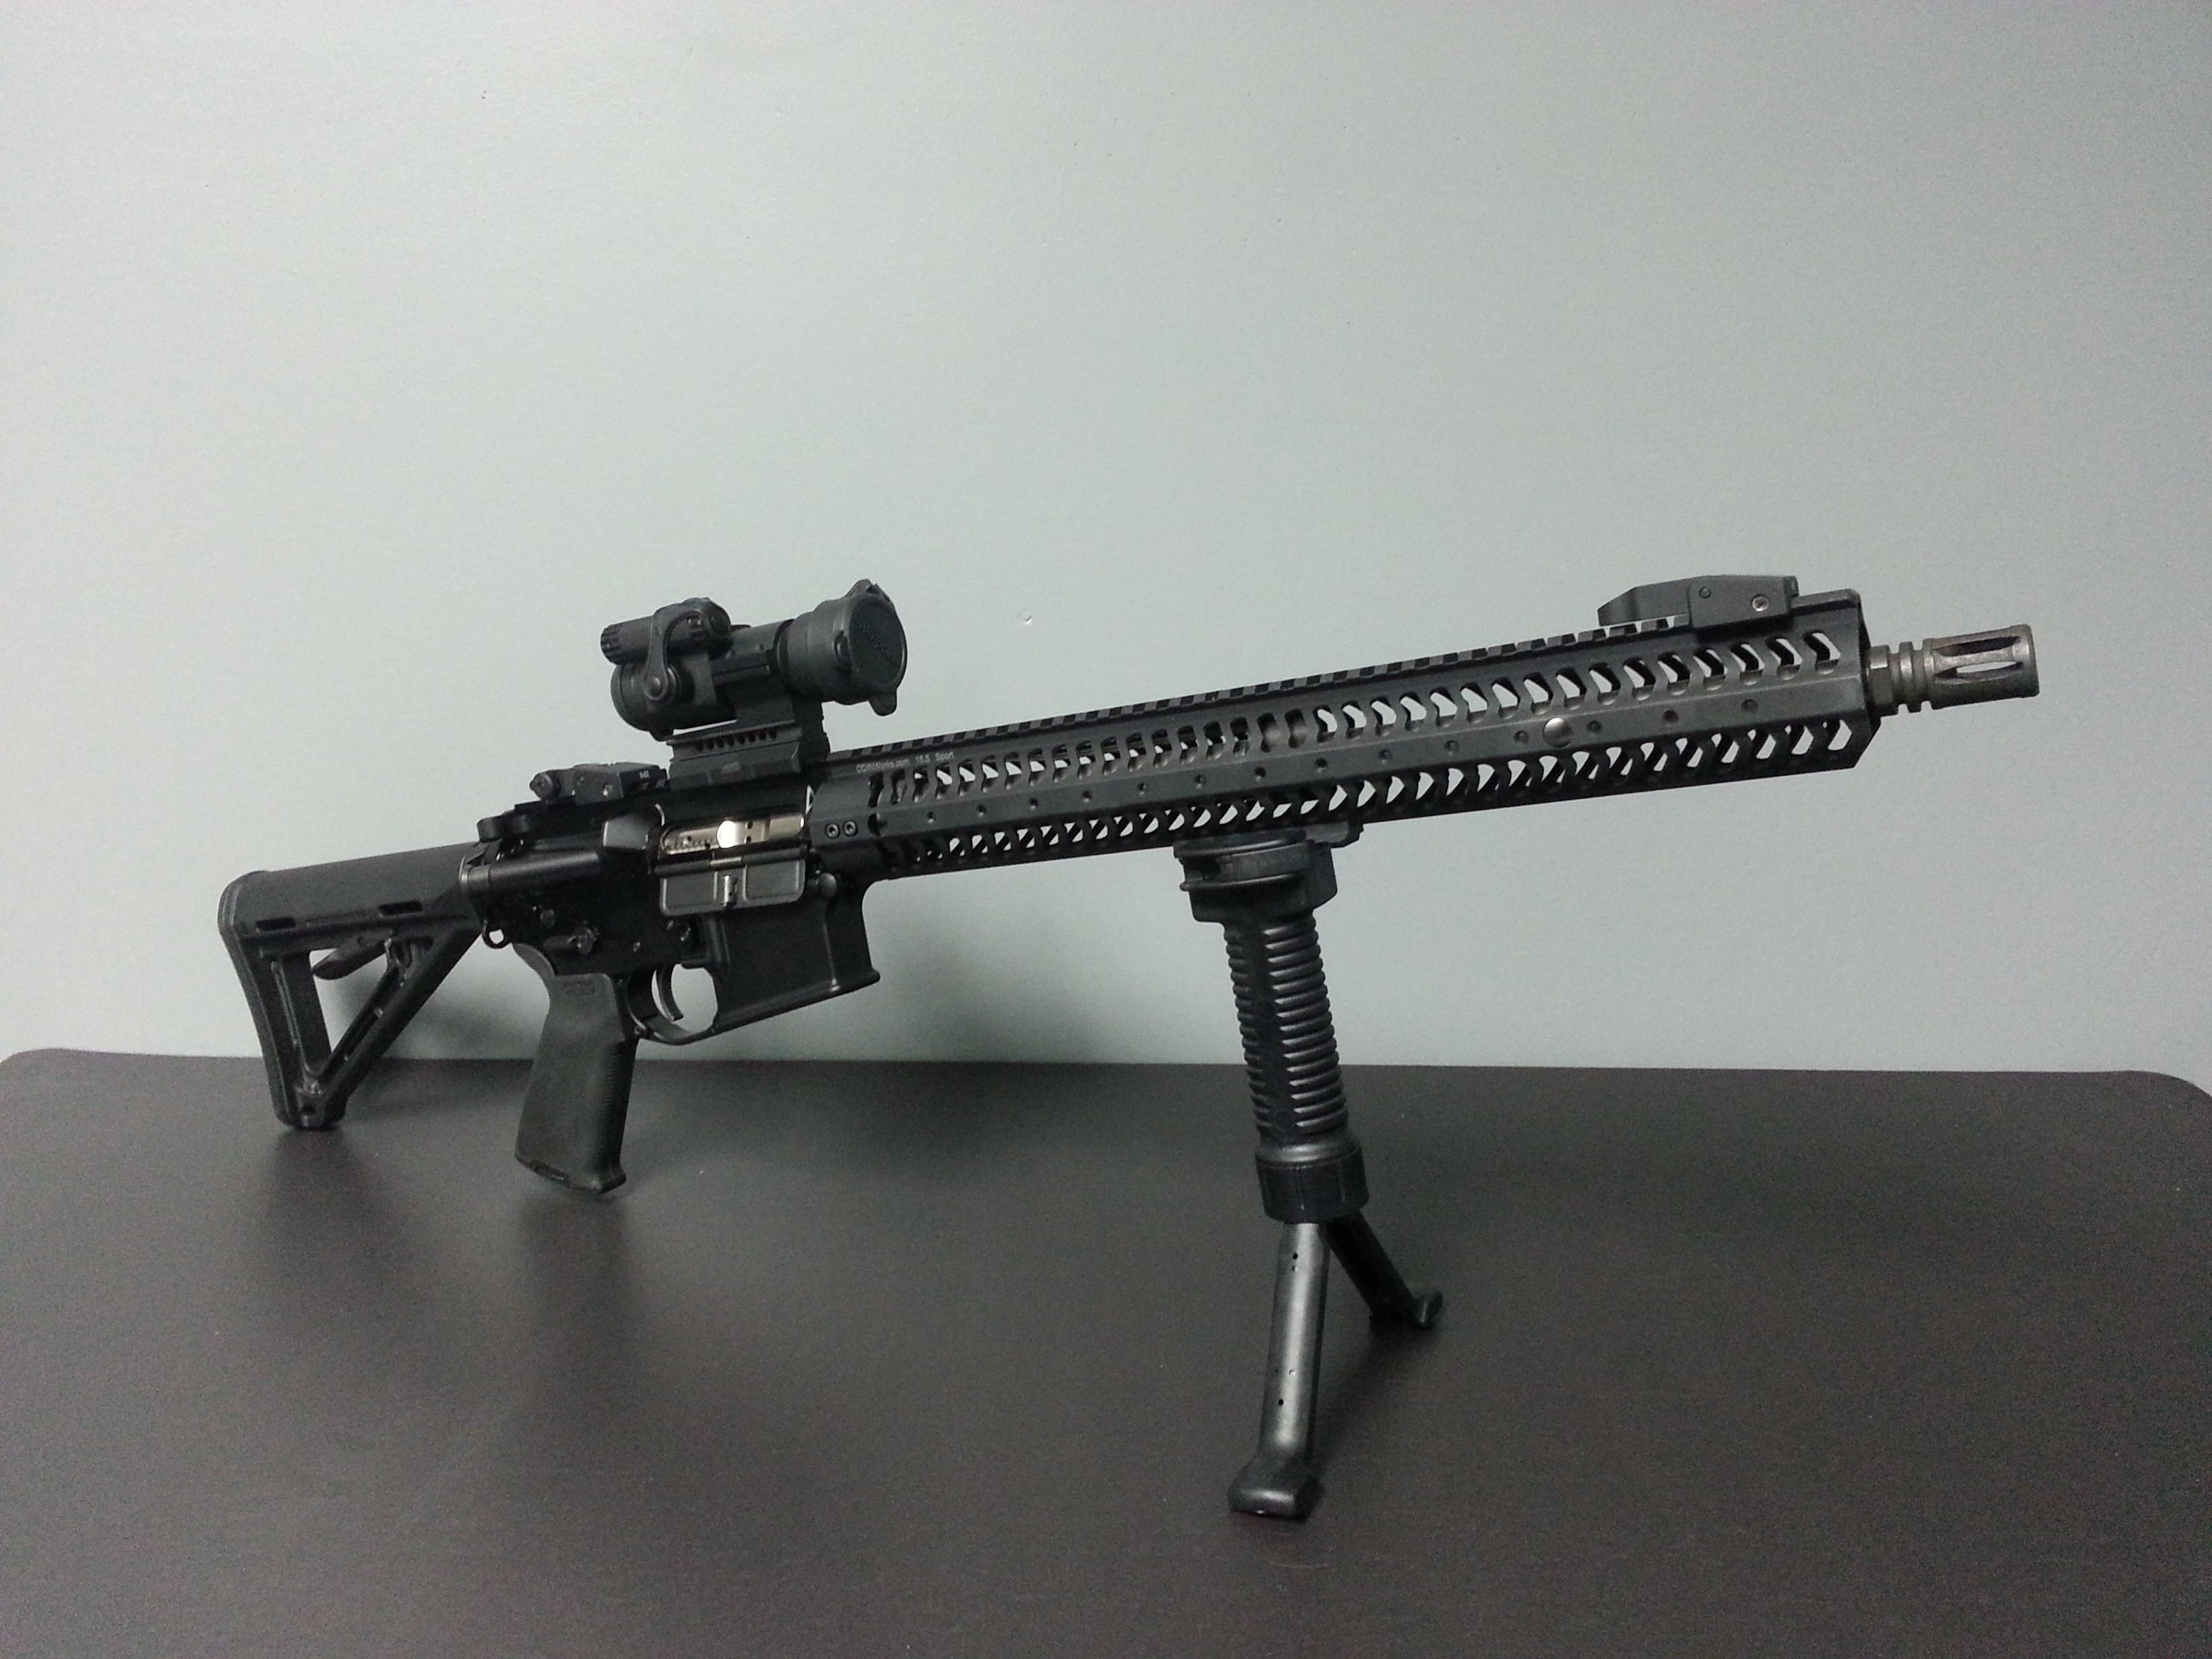 A Look At The Law Enforcement Version Of The Grip Pod Forward Grip And Bipod